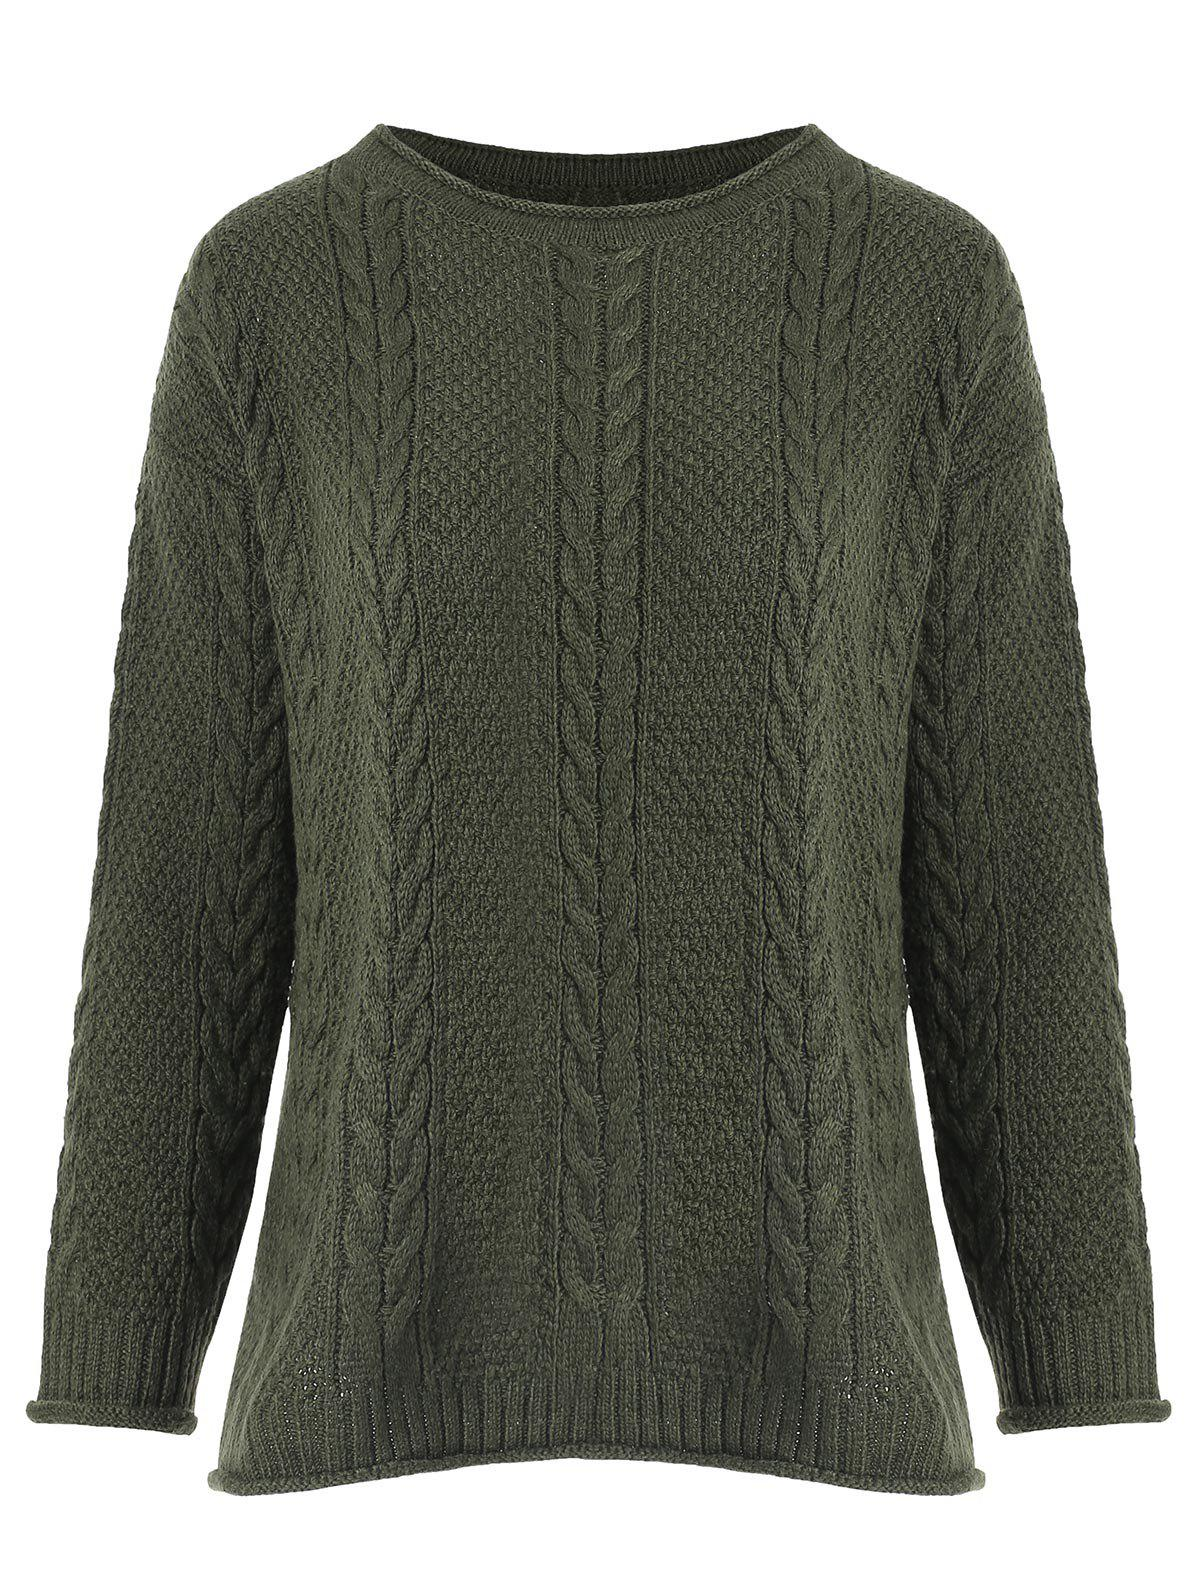 Fancy Crimping Cable Knit Sweater